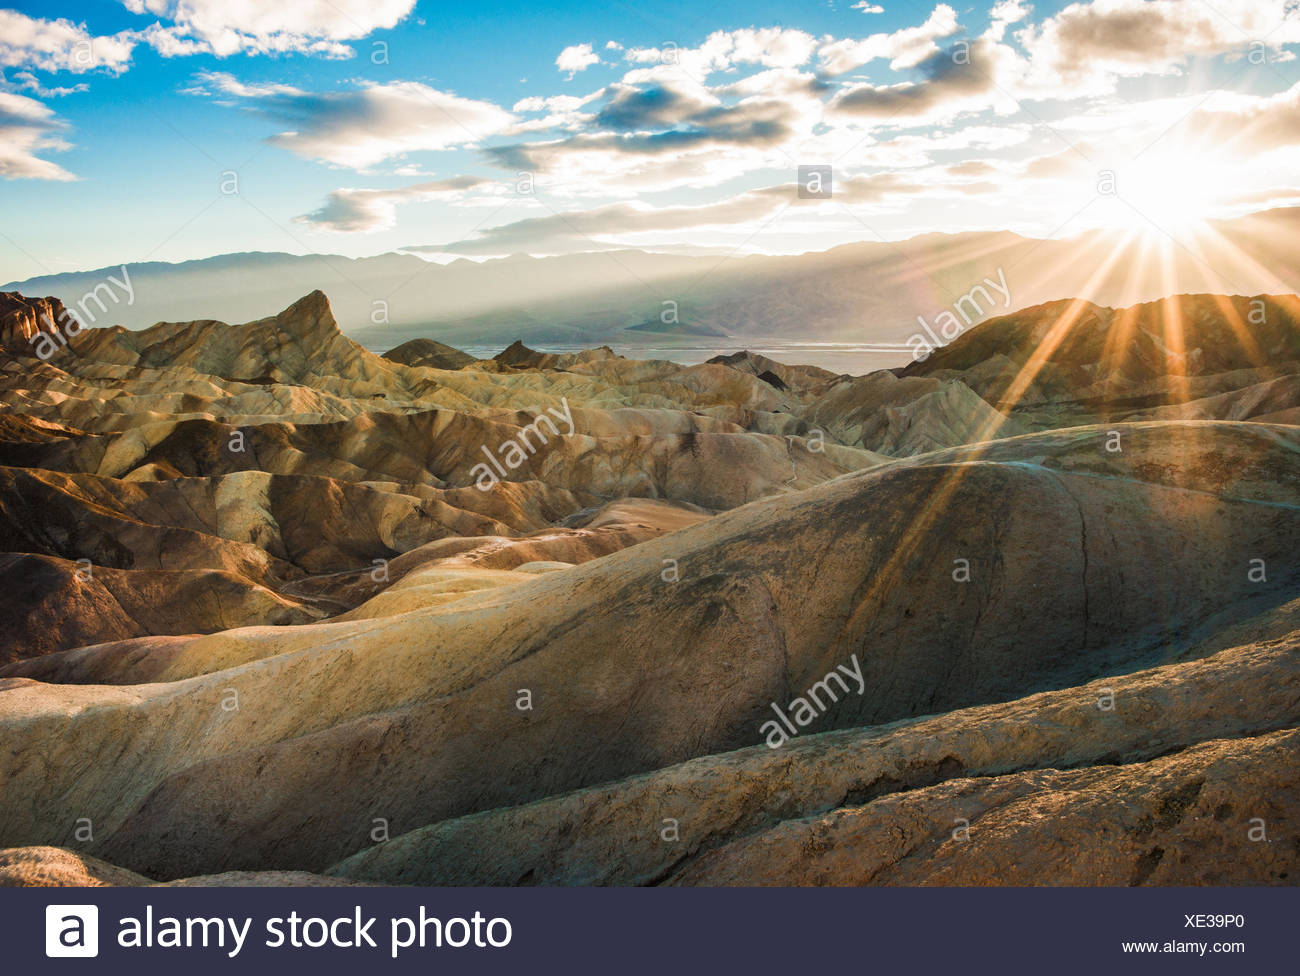 Zabriskie Point Trail bei Sonnenuntergang, Death Valley National Park, Inyo County, Kalifornien, USA Stockfoto